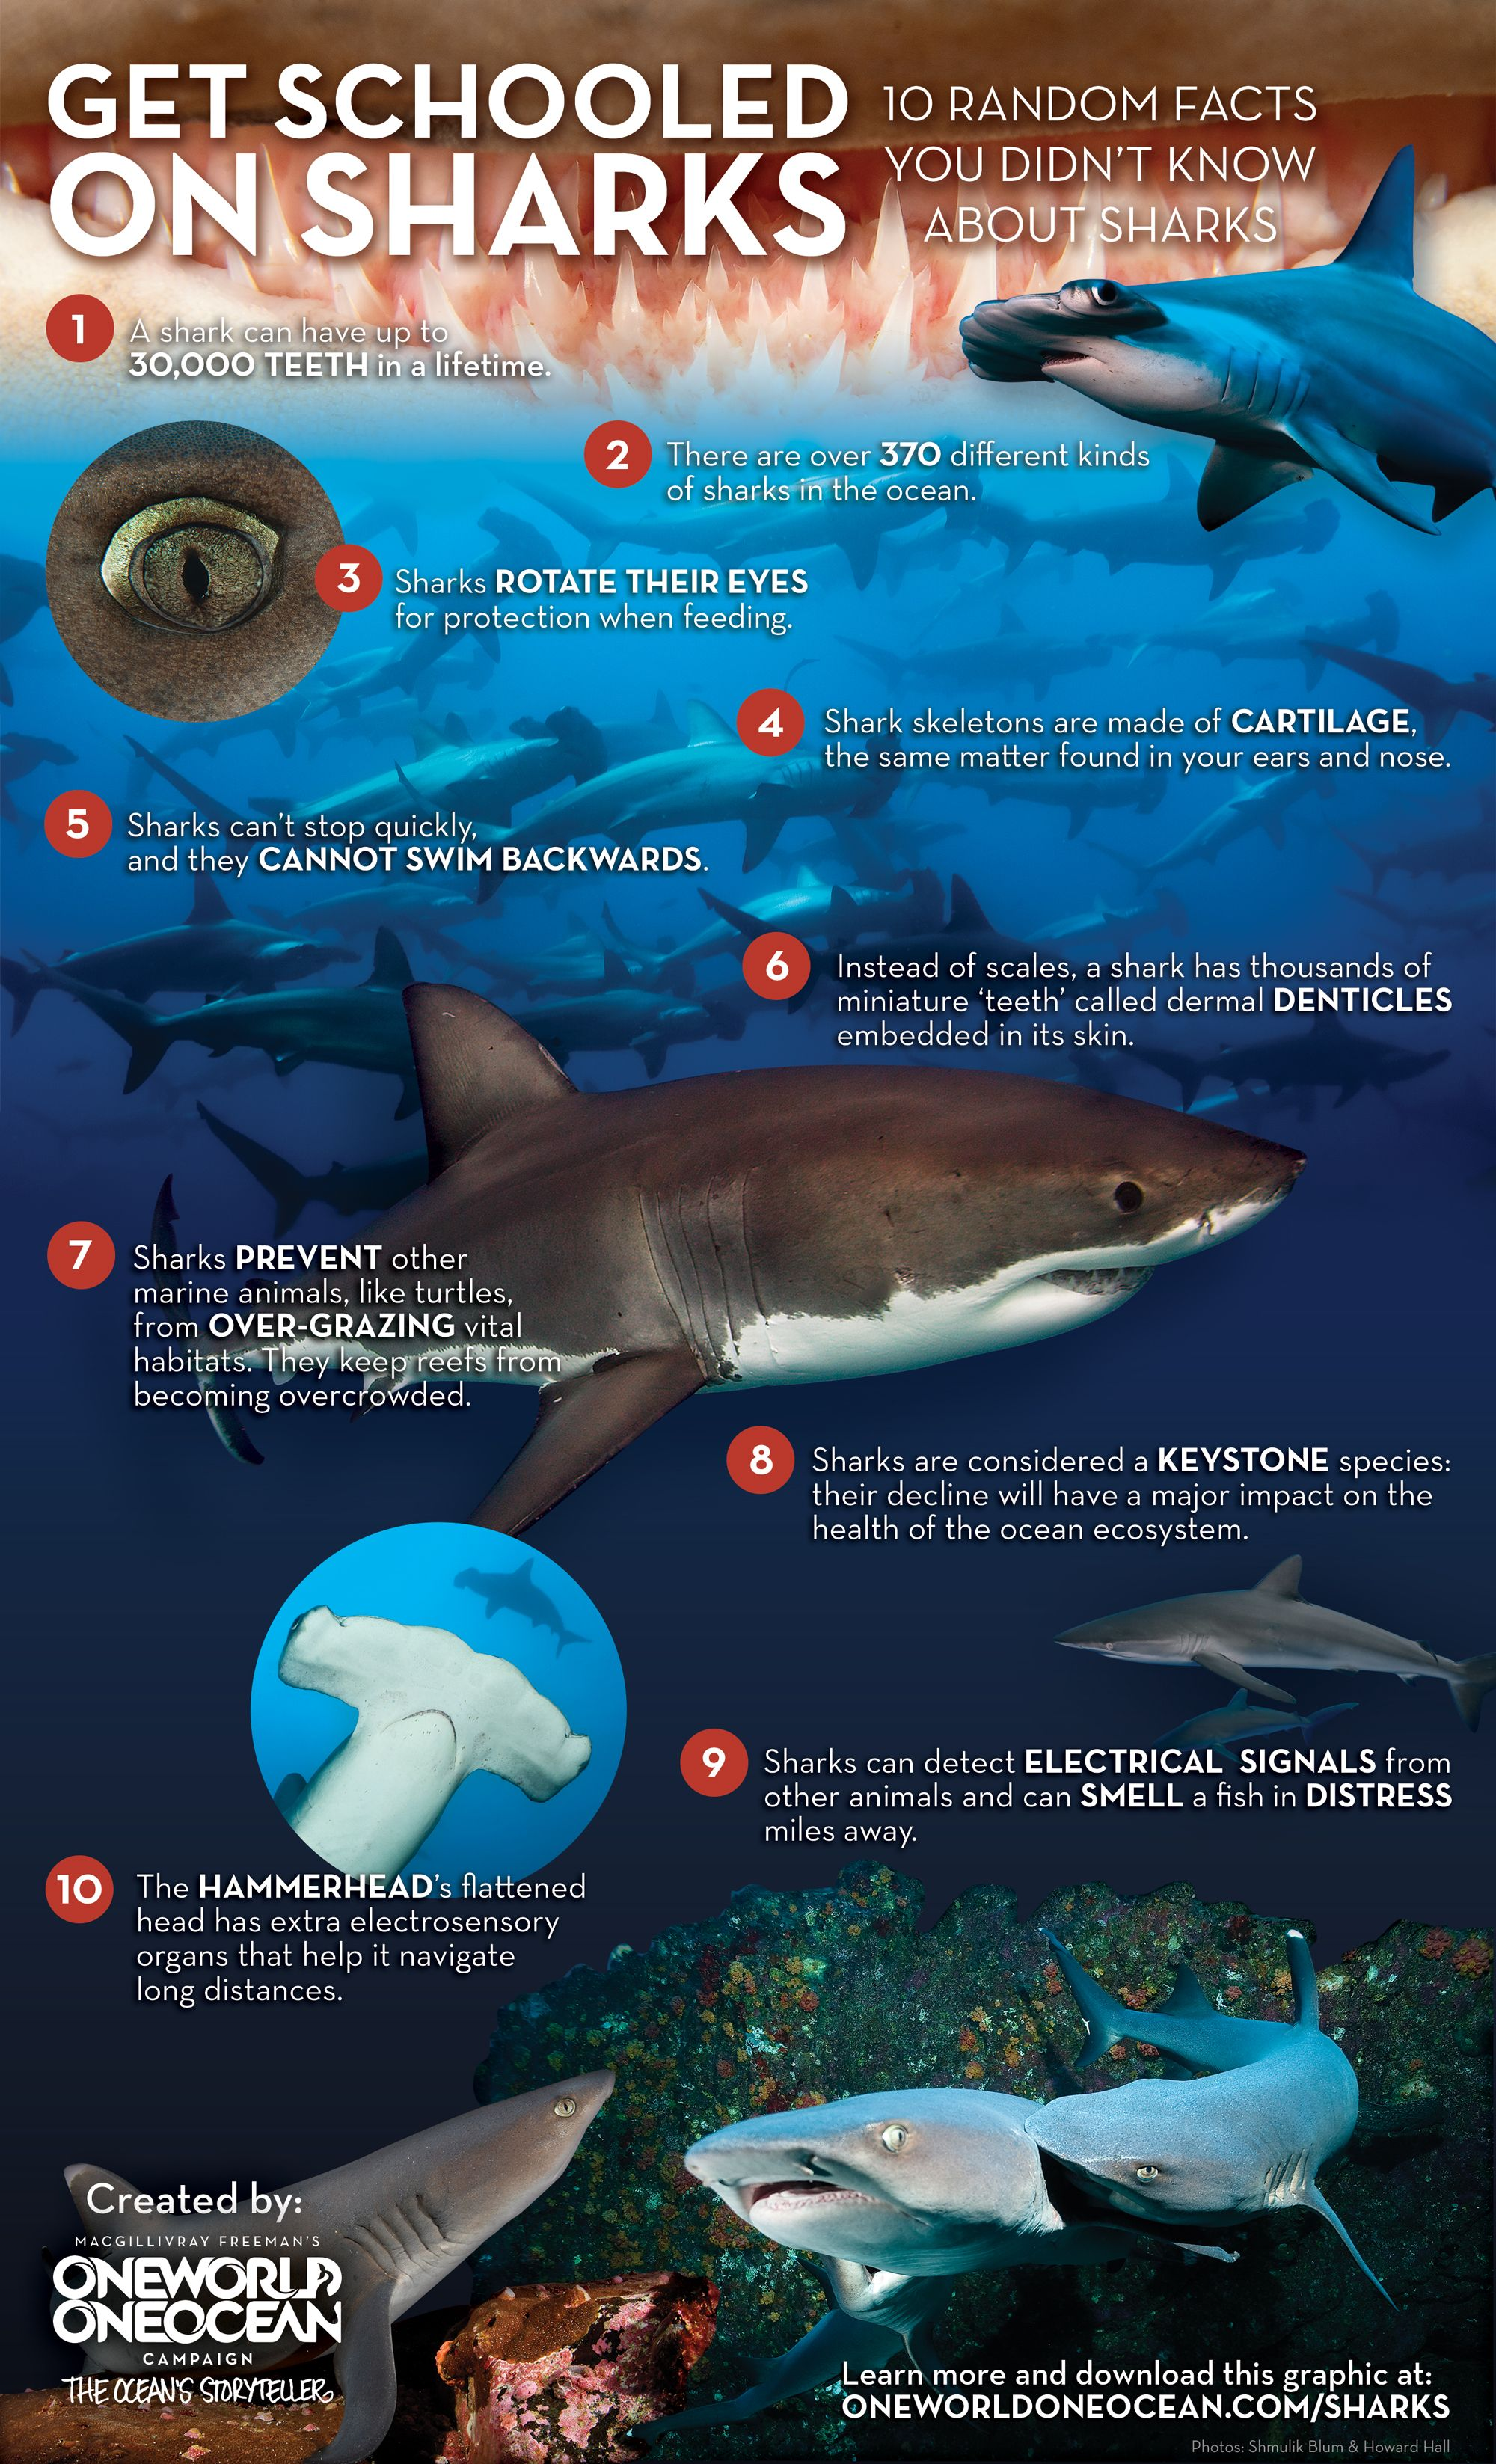 Get Schooled On Sharks Infographic